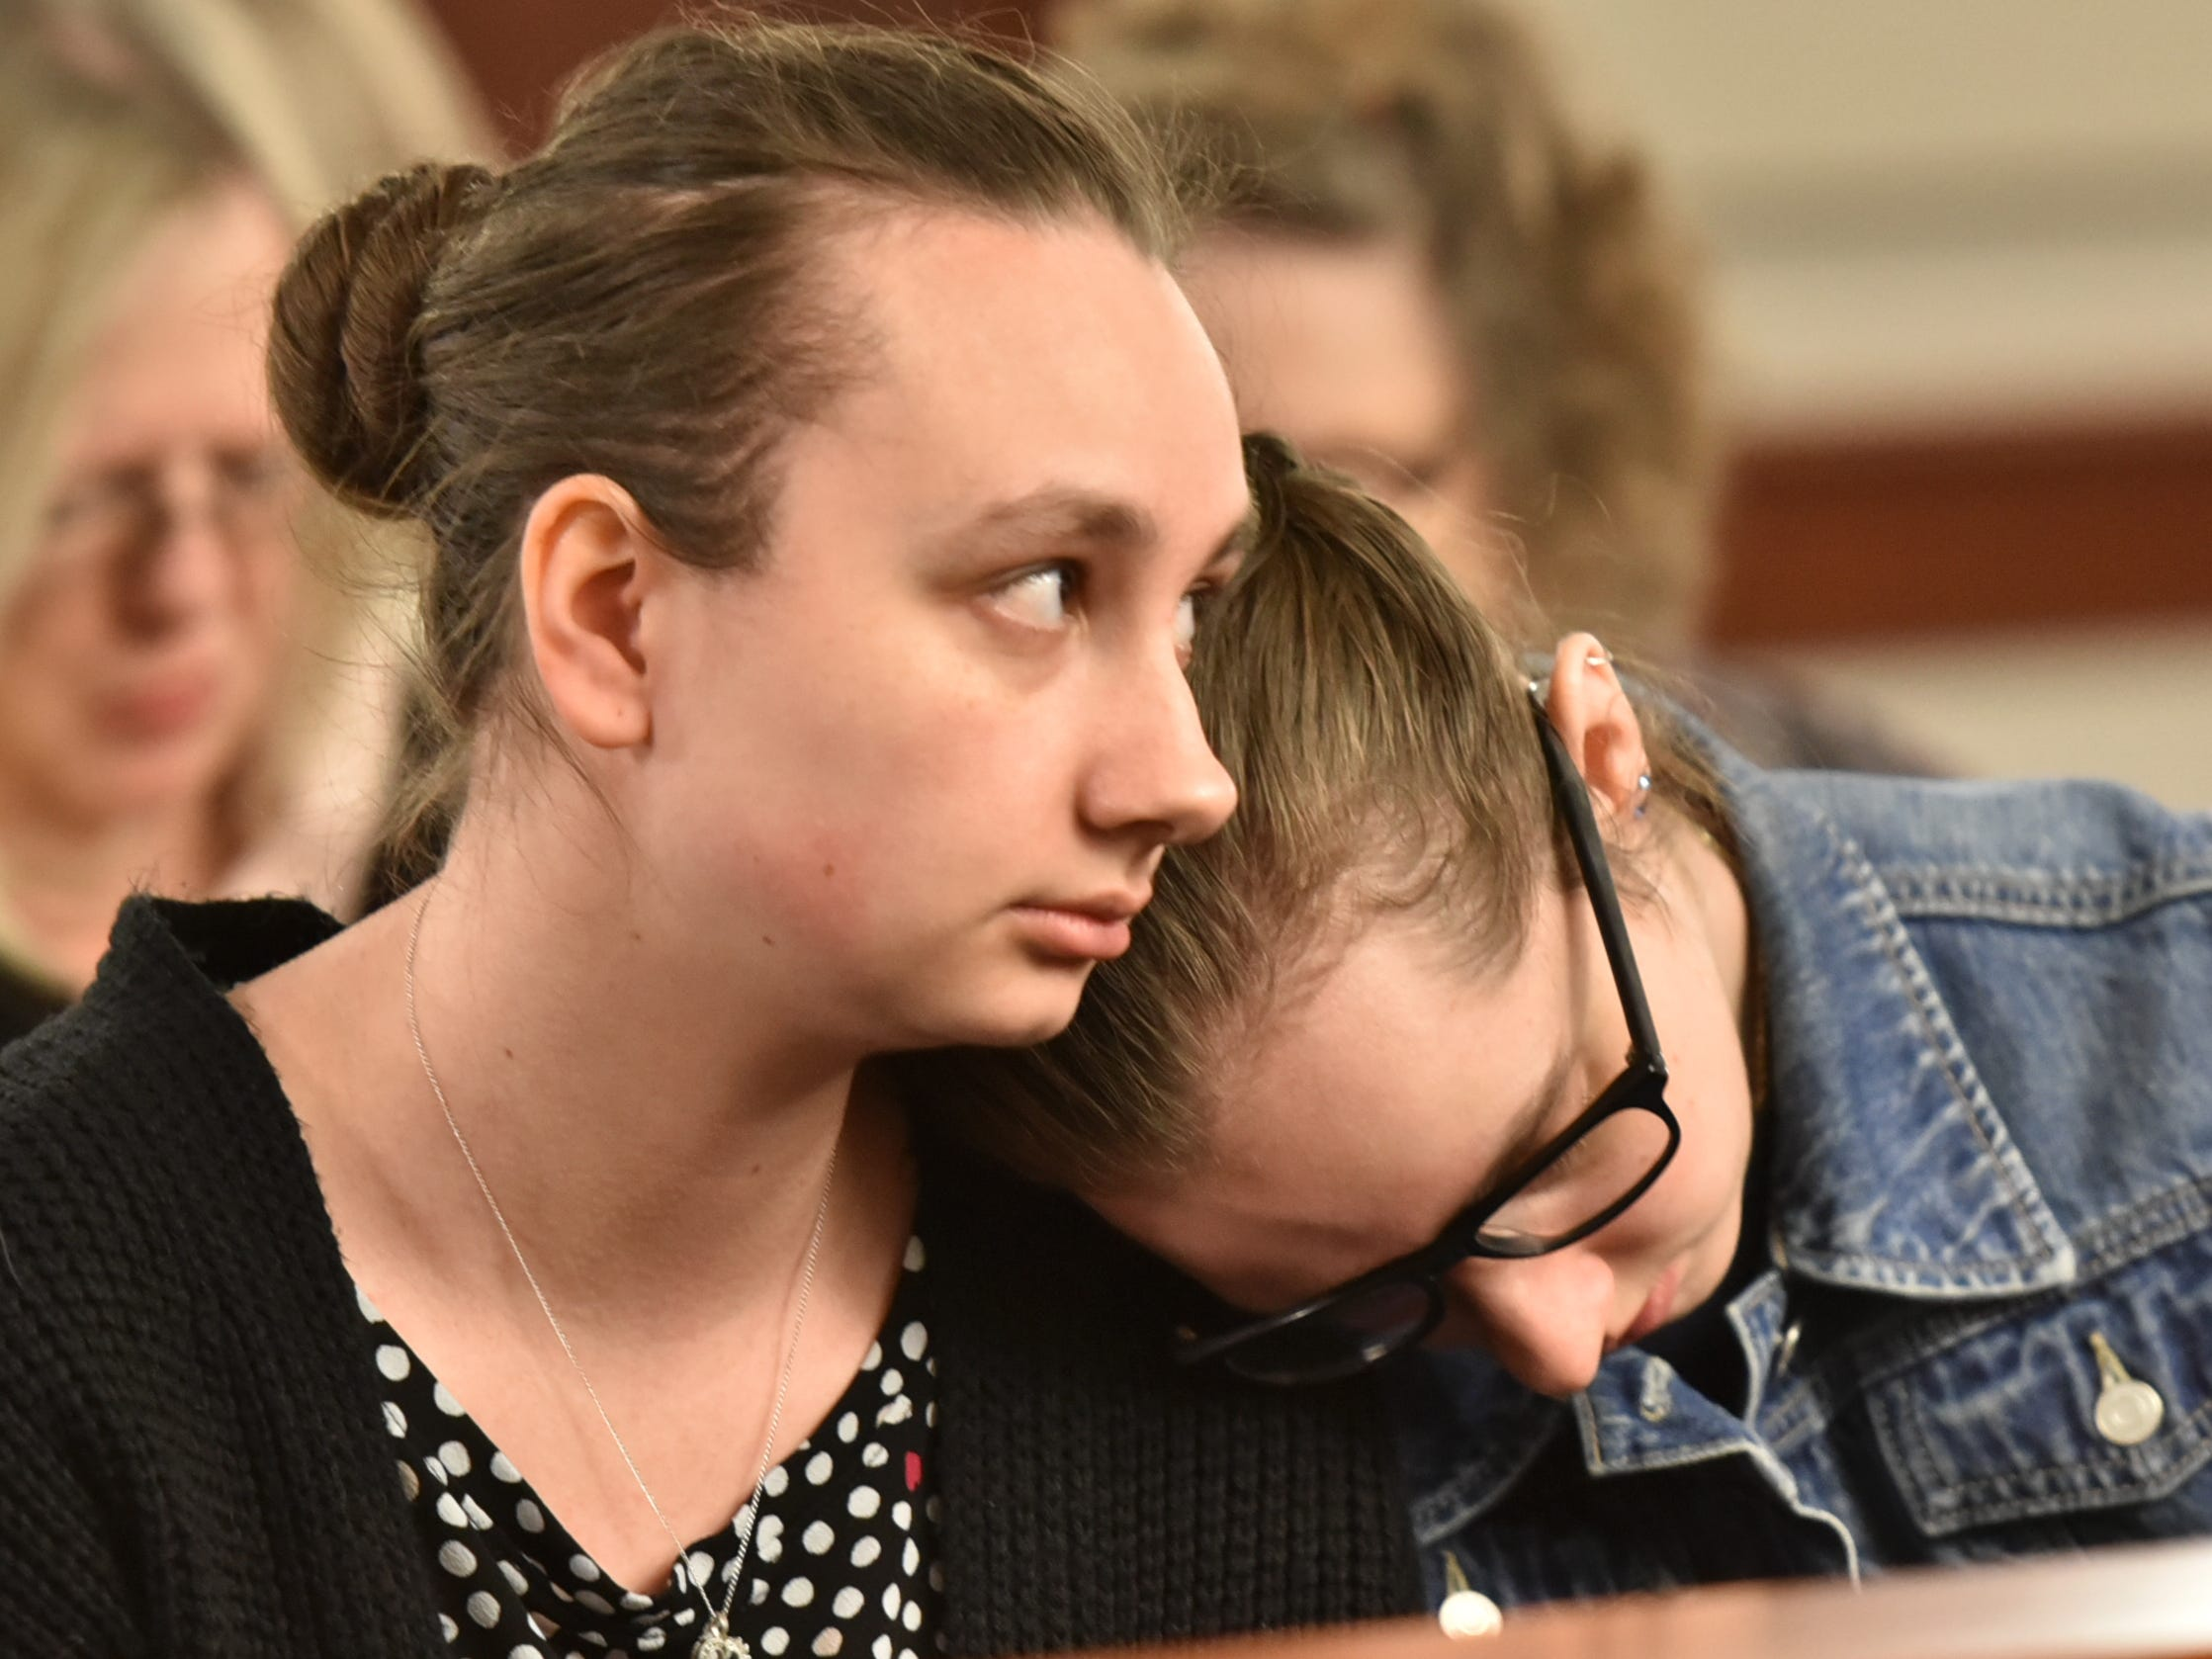 Danielle Stislicki's sisters Jillian and Holly share a quiet moment together in the 47th District Court in Farmington Hills on March 6.